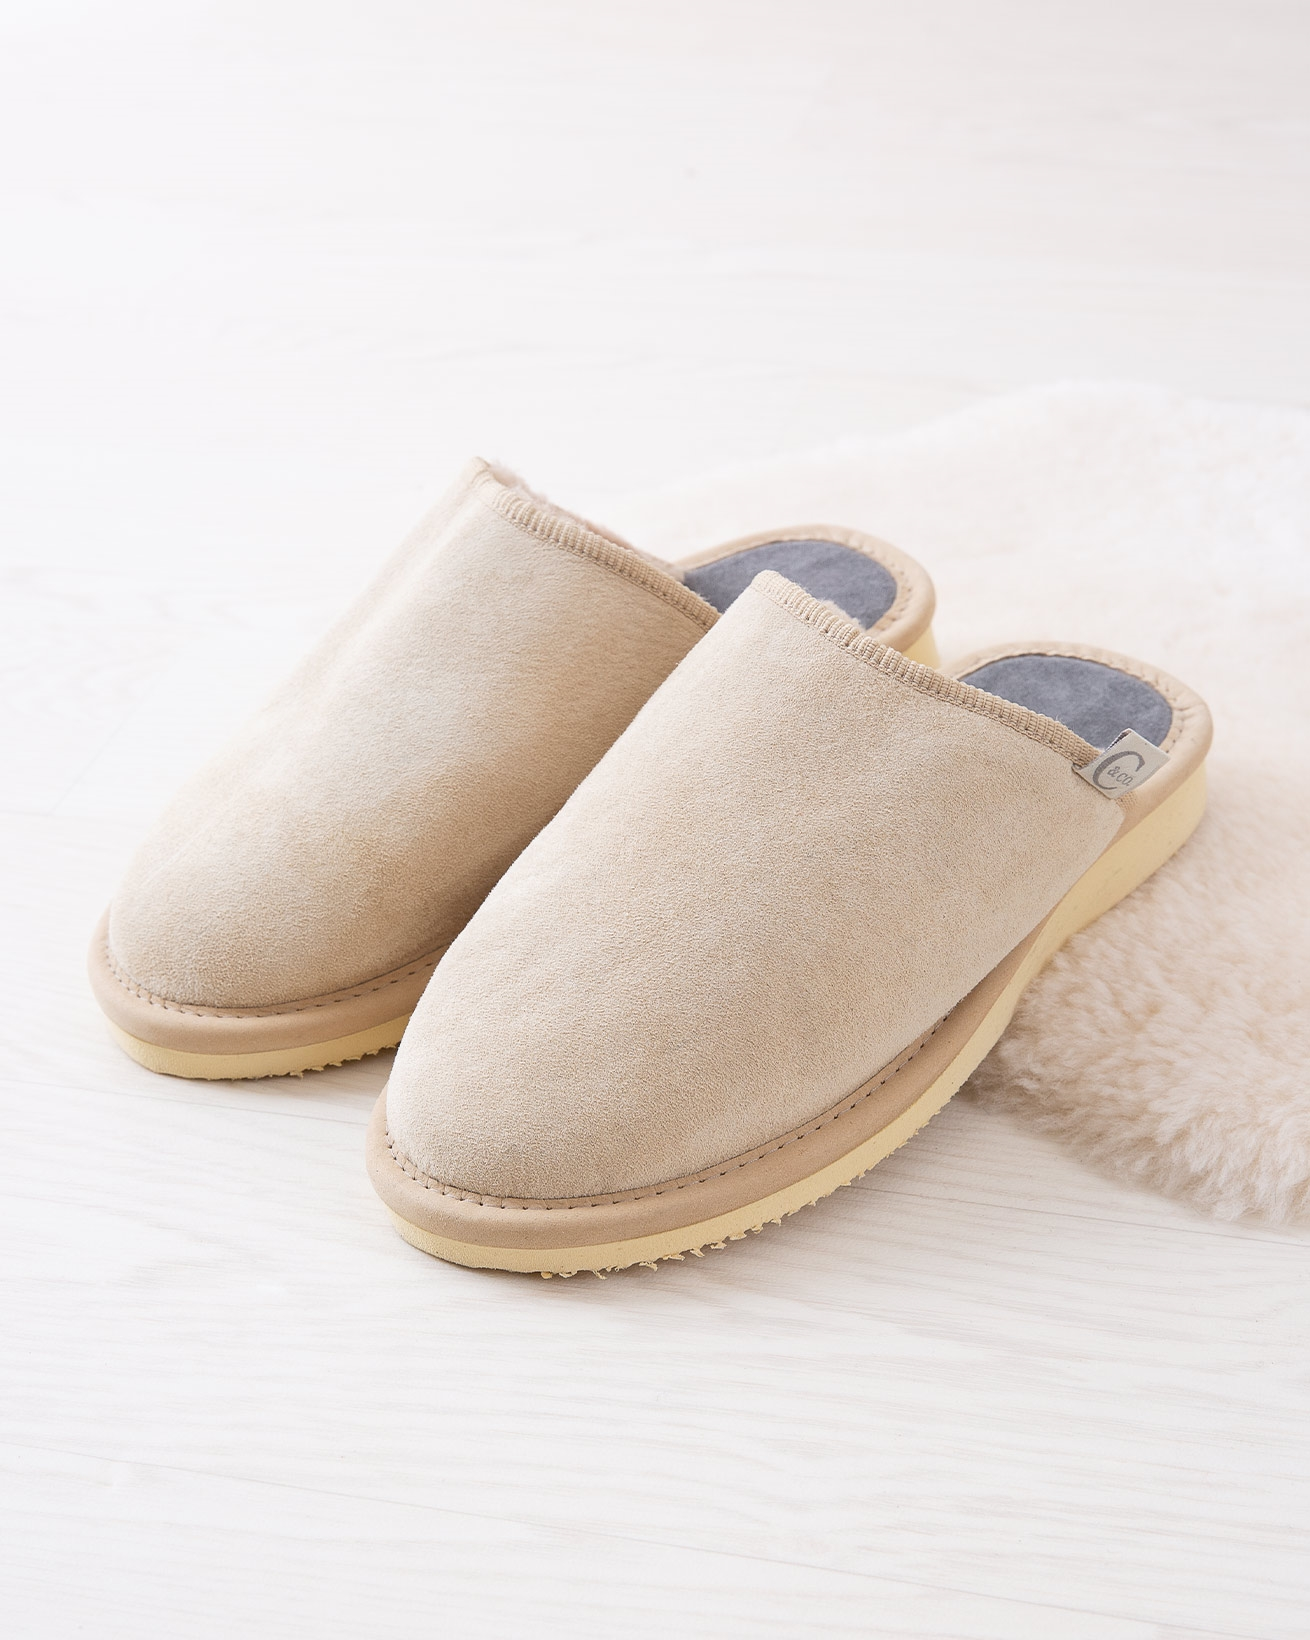 6617_ladies-clogs_oatmeal_lifestyle_lfs.jpg